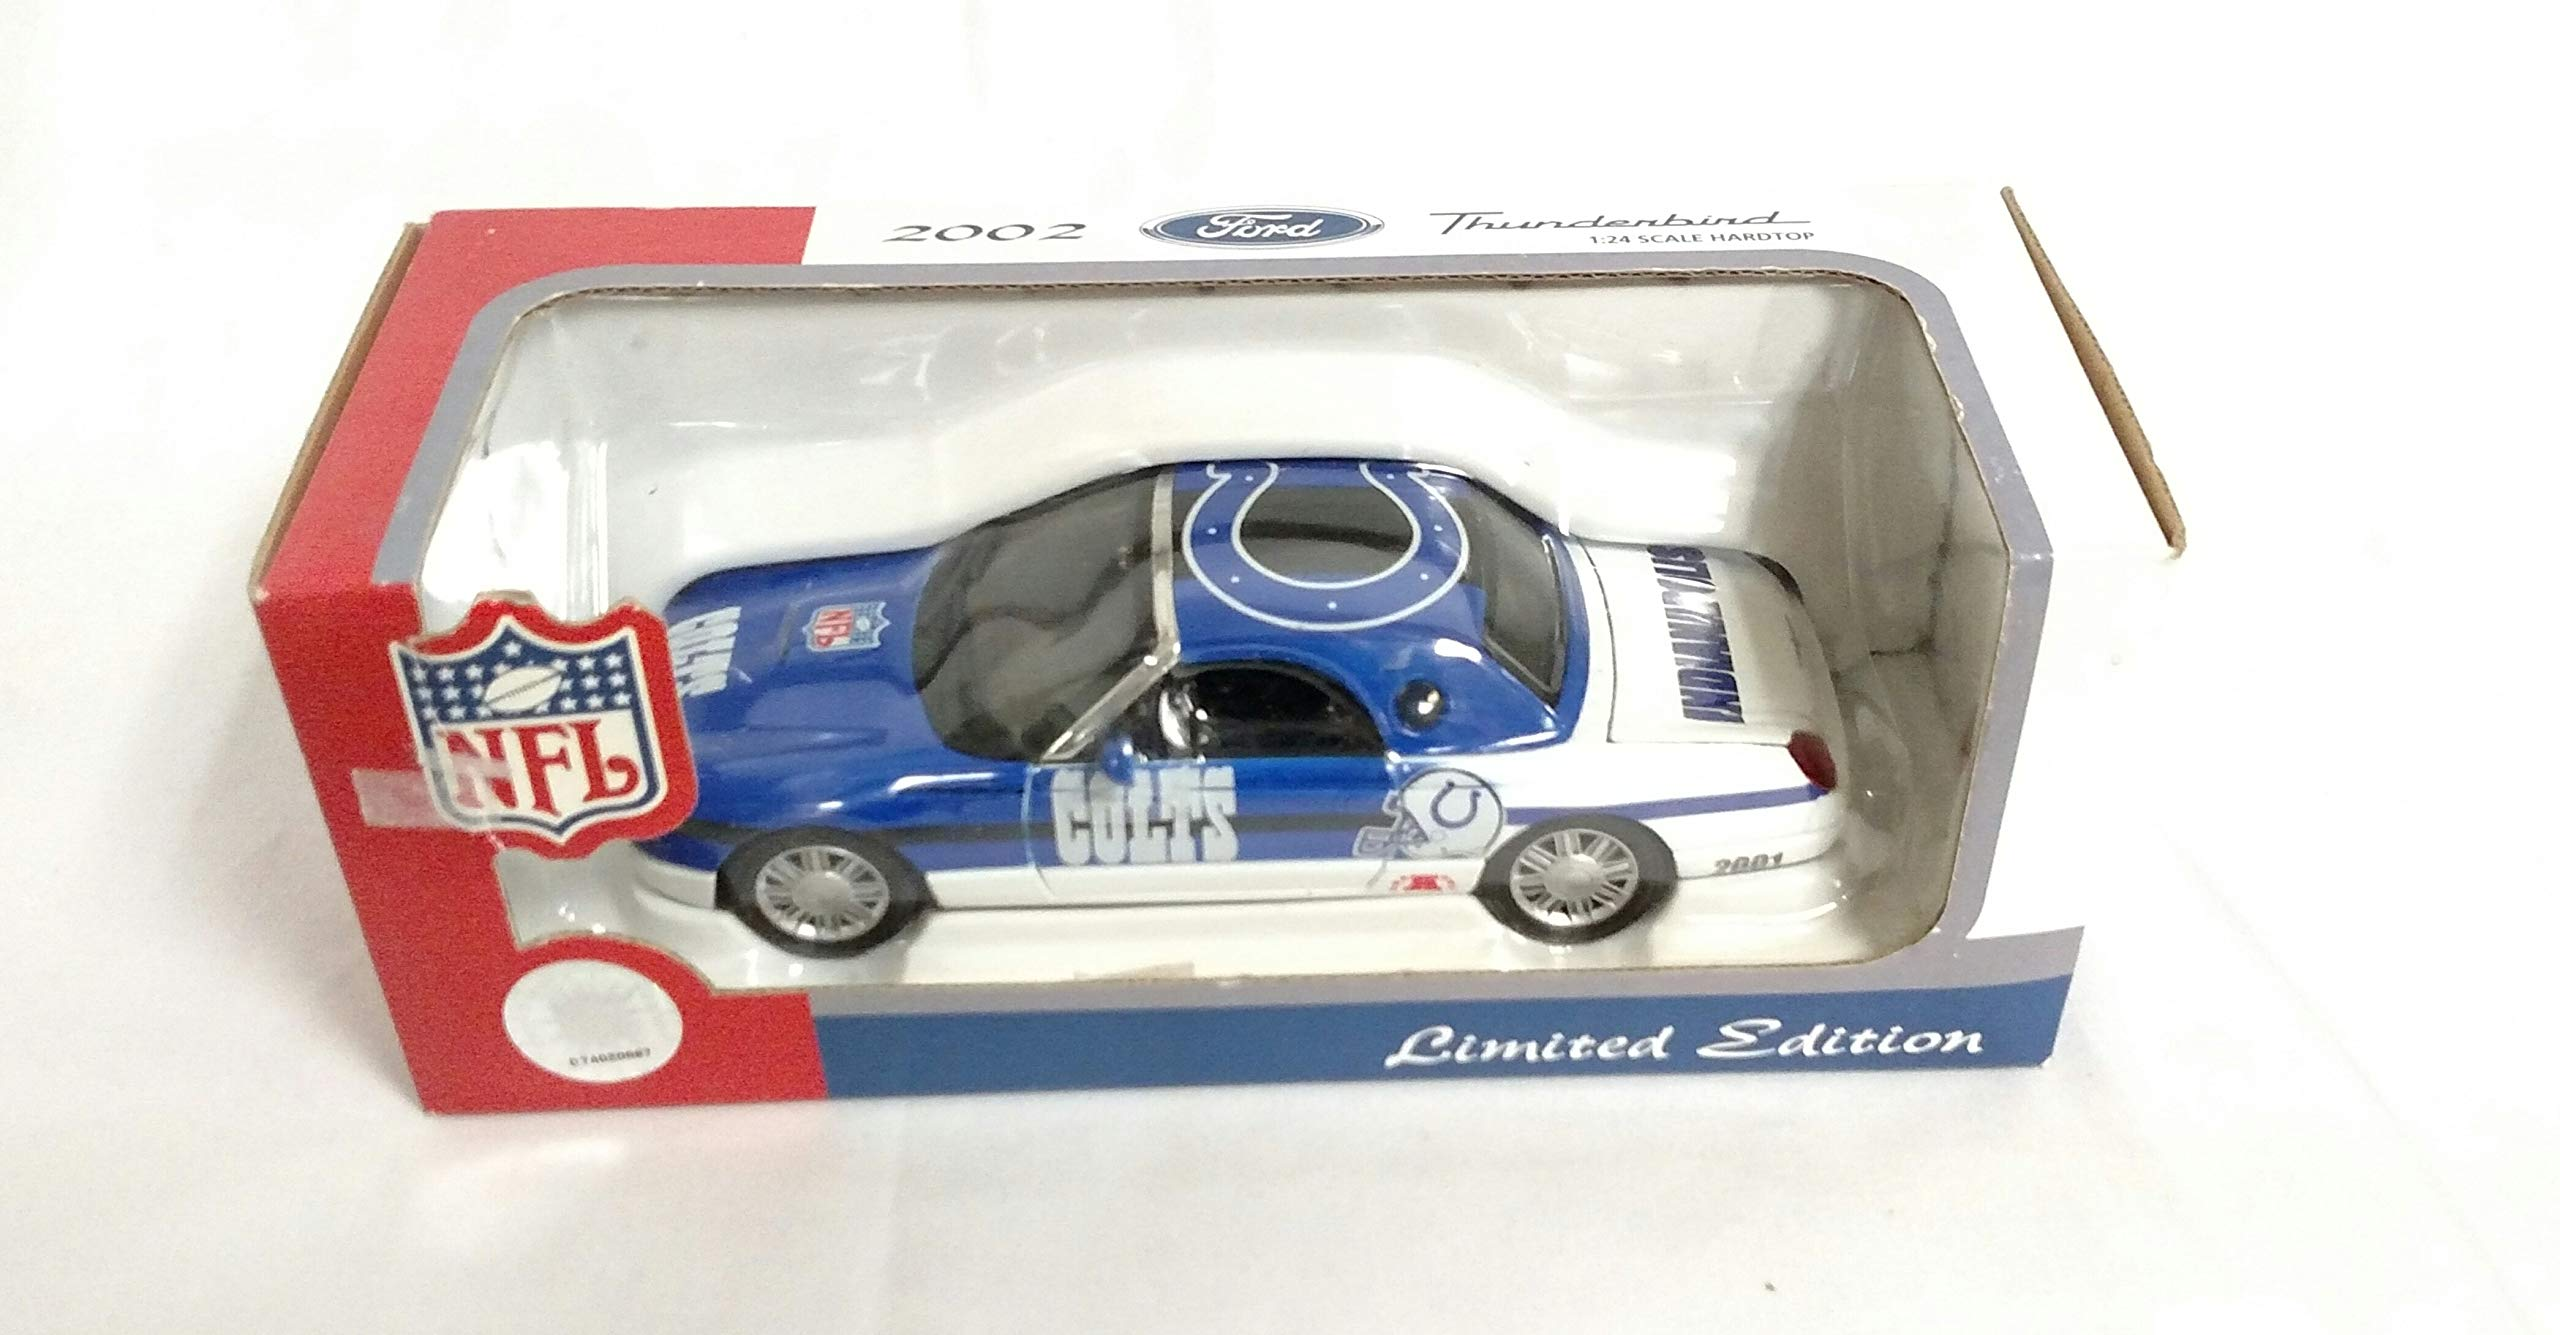 Indianapolis Colts 2002 Ford Thunderbird Limited Edition Die Cast Collectible